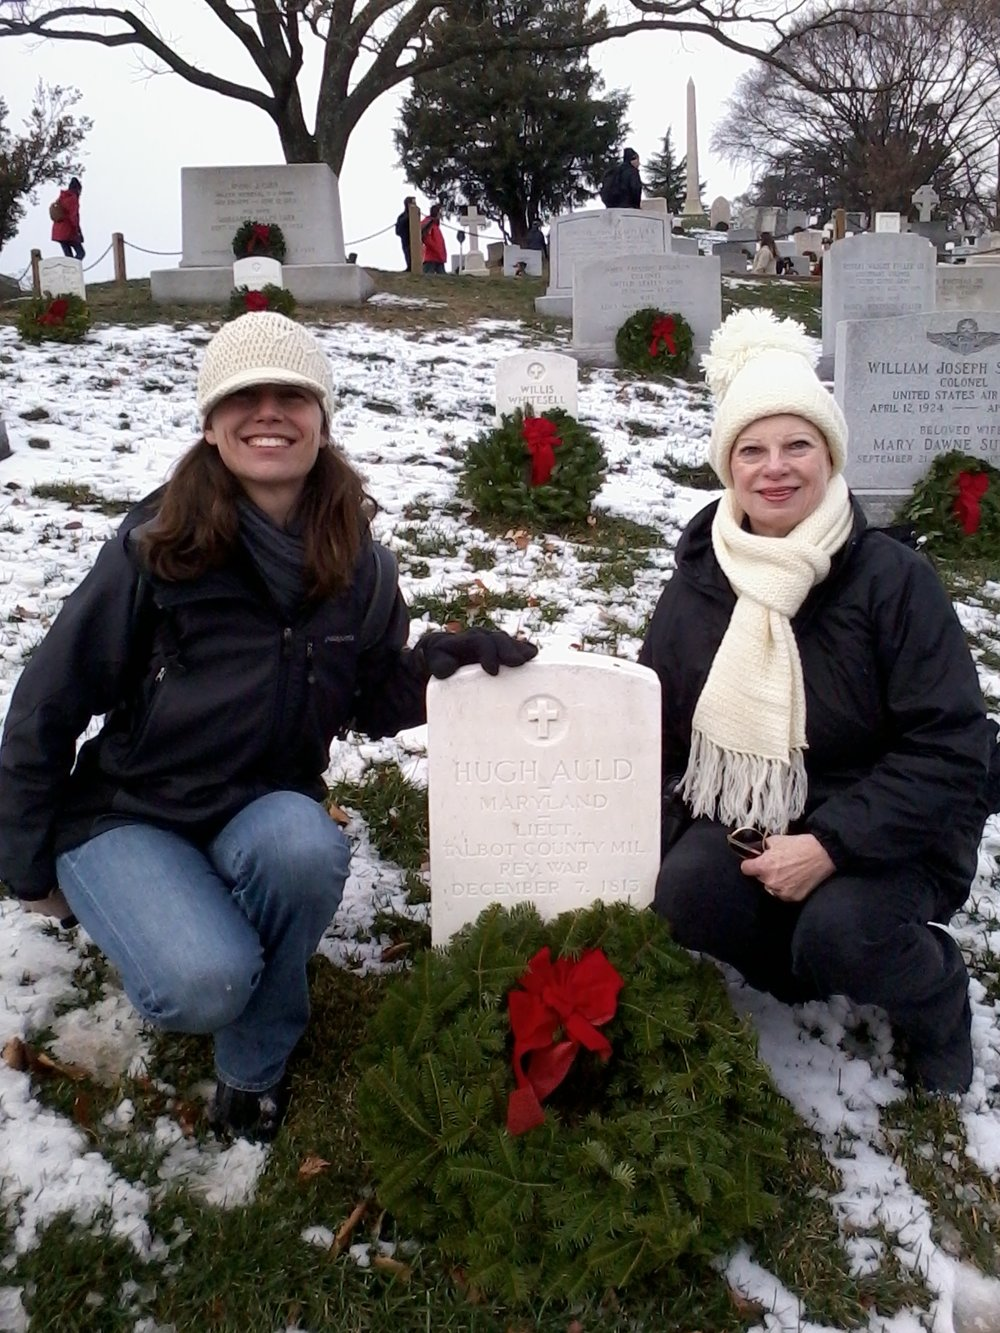 Laying wreaths at Arlington National Cemetery